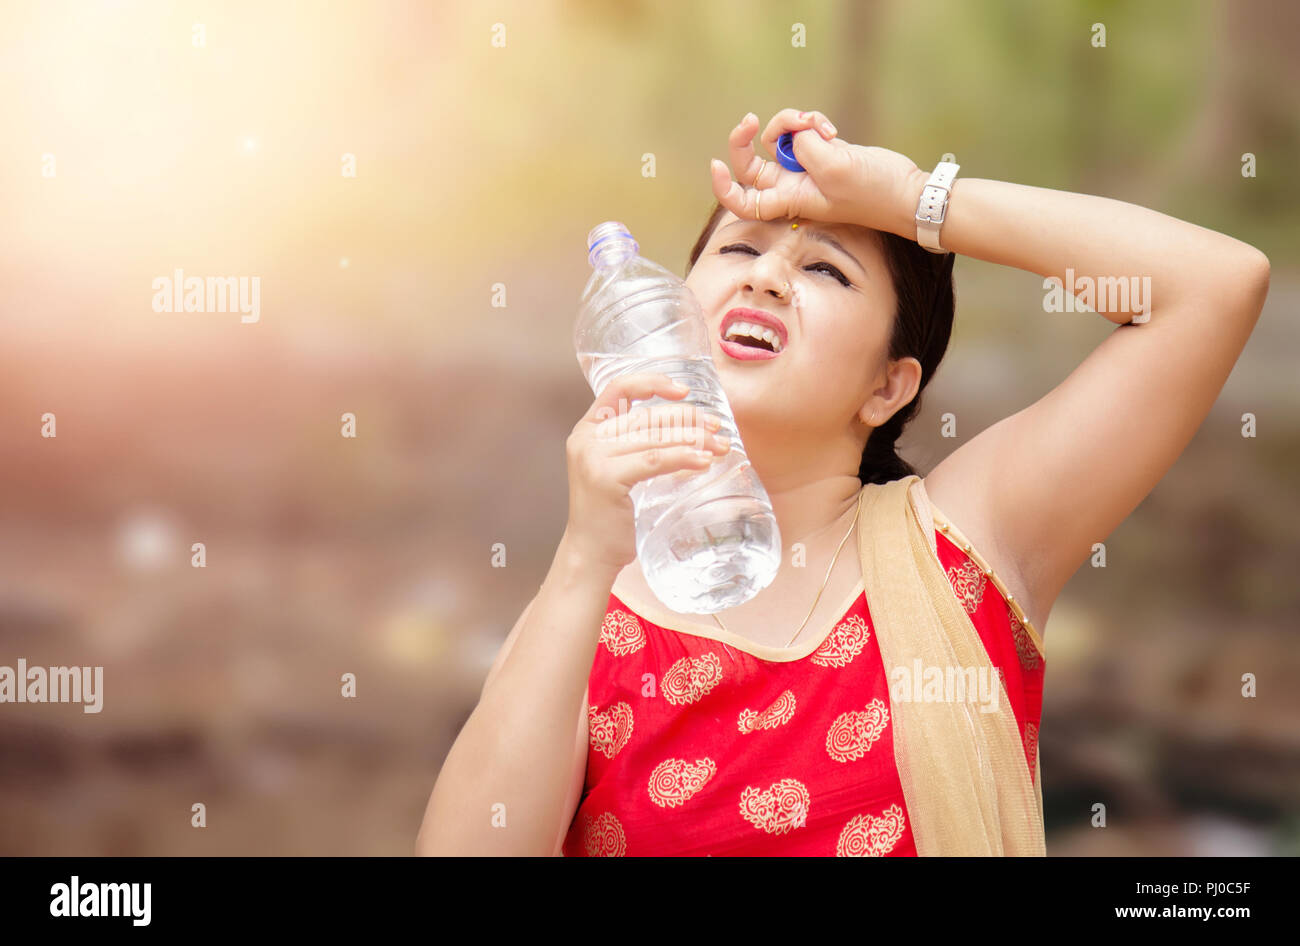 Young Indian woman holding water bottle during warm sunny day. - Stock Image